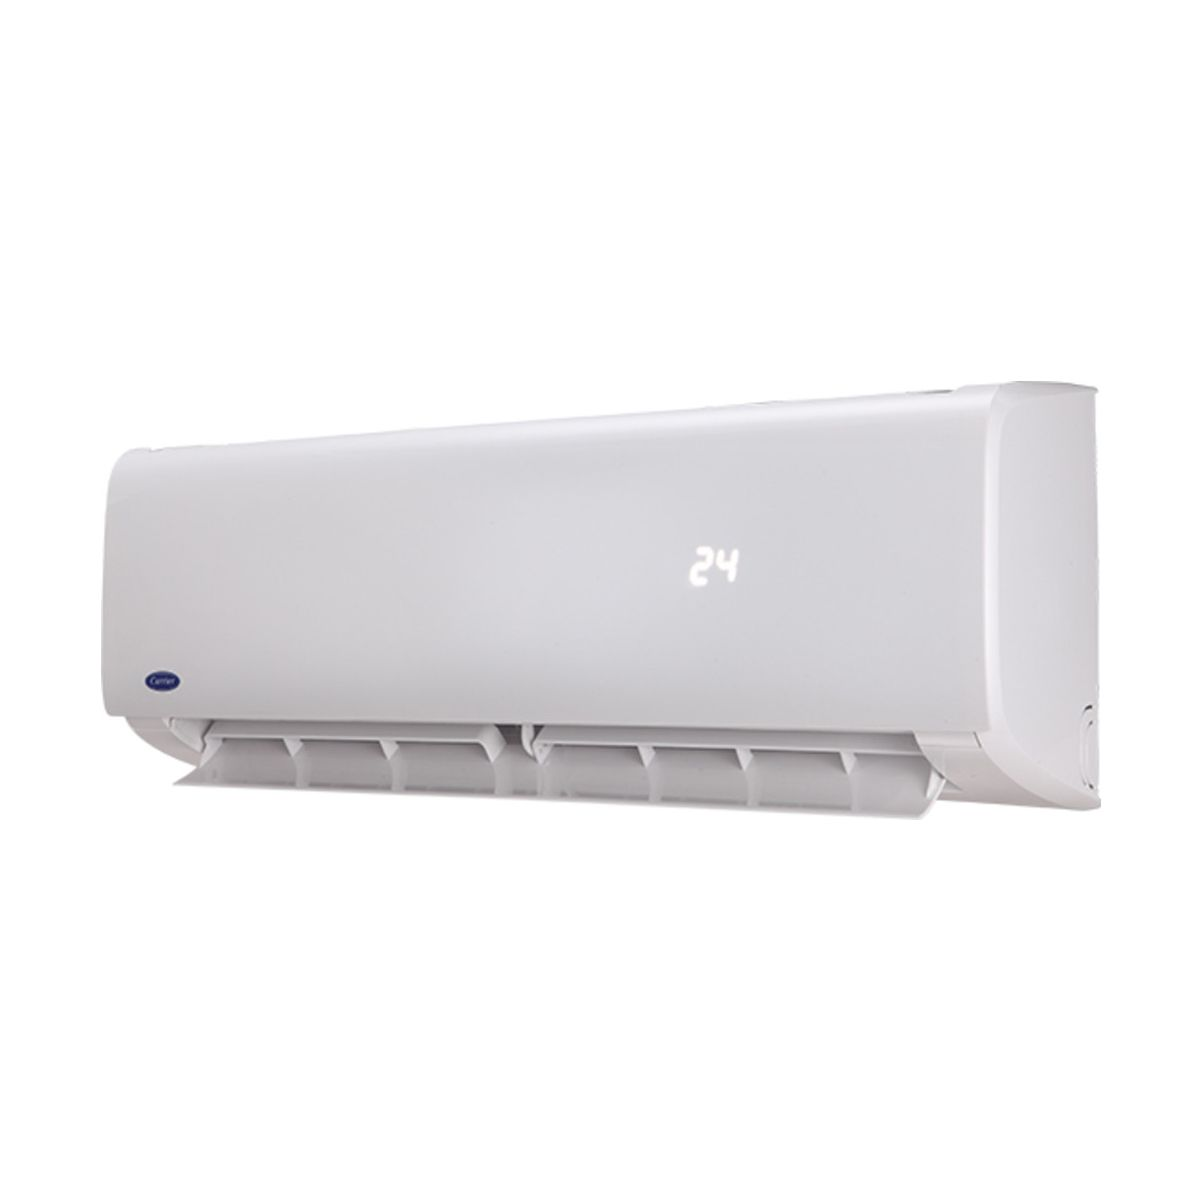 Carrier Air Conditioning Wall Mounted 42qhc009ds 2 5kw